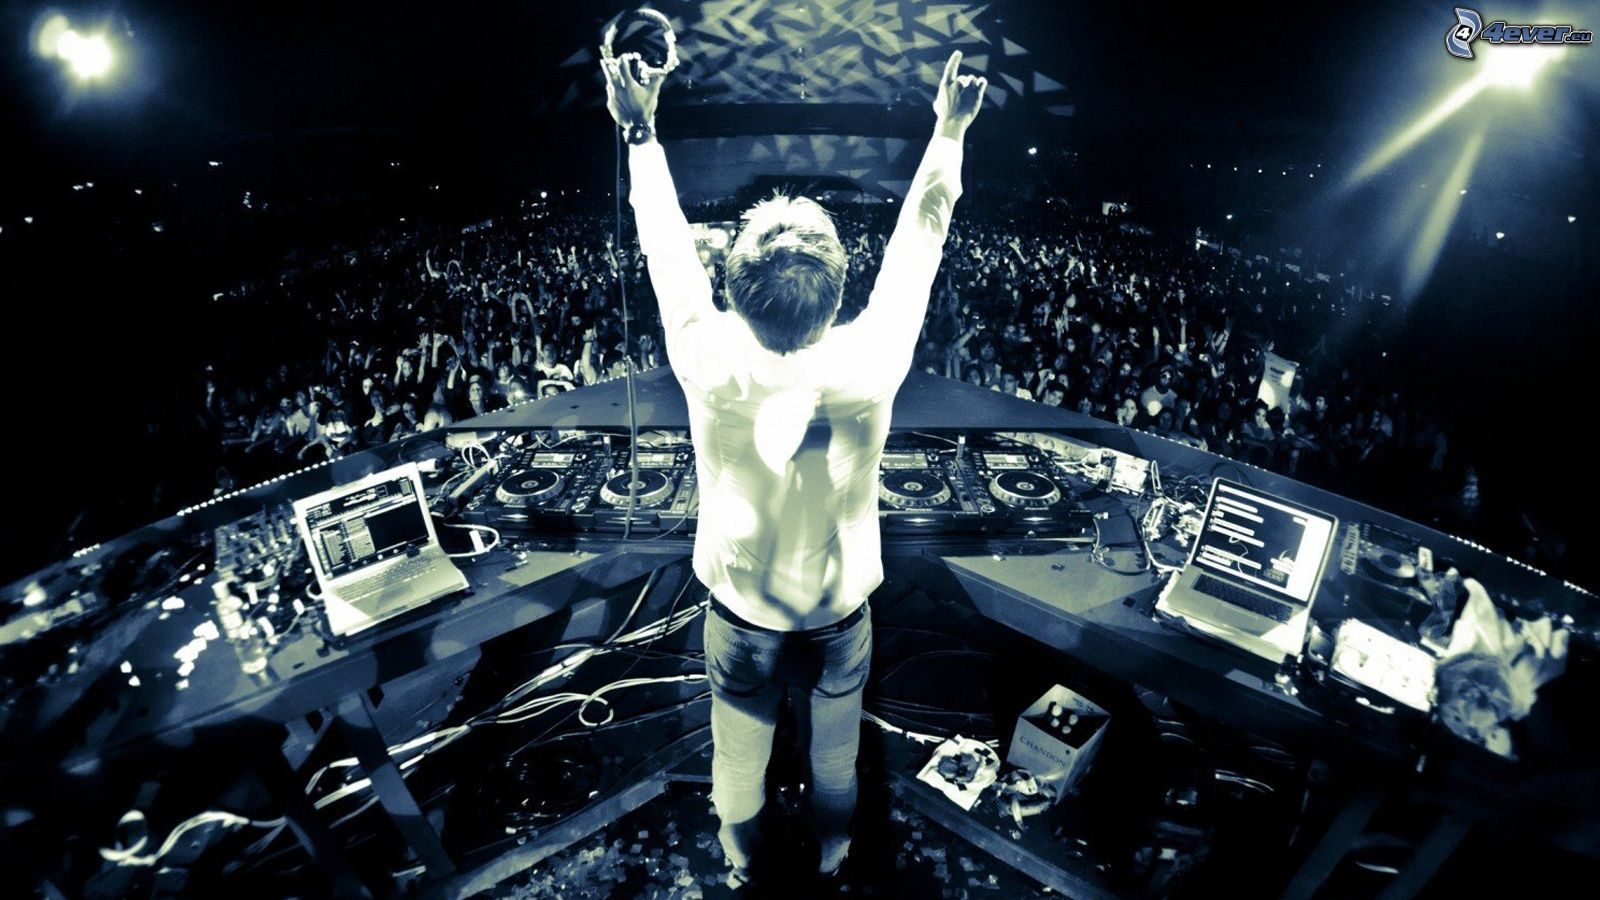 Top 15 Highest Paid DJs in the World